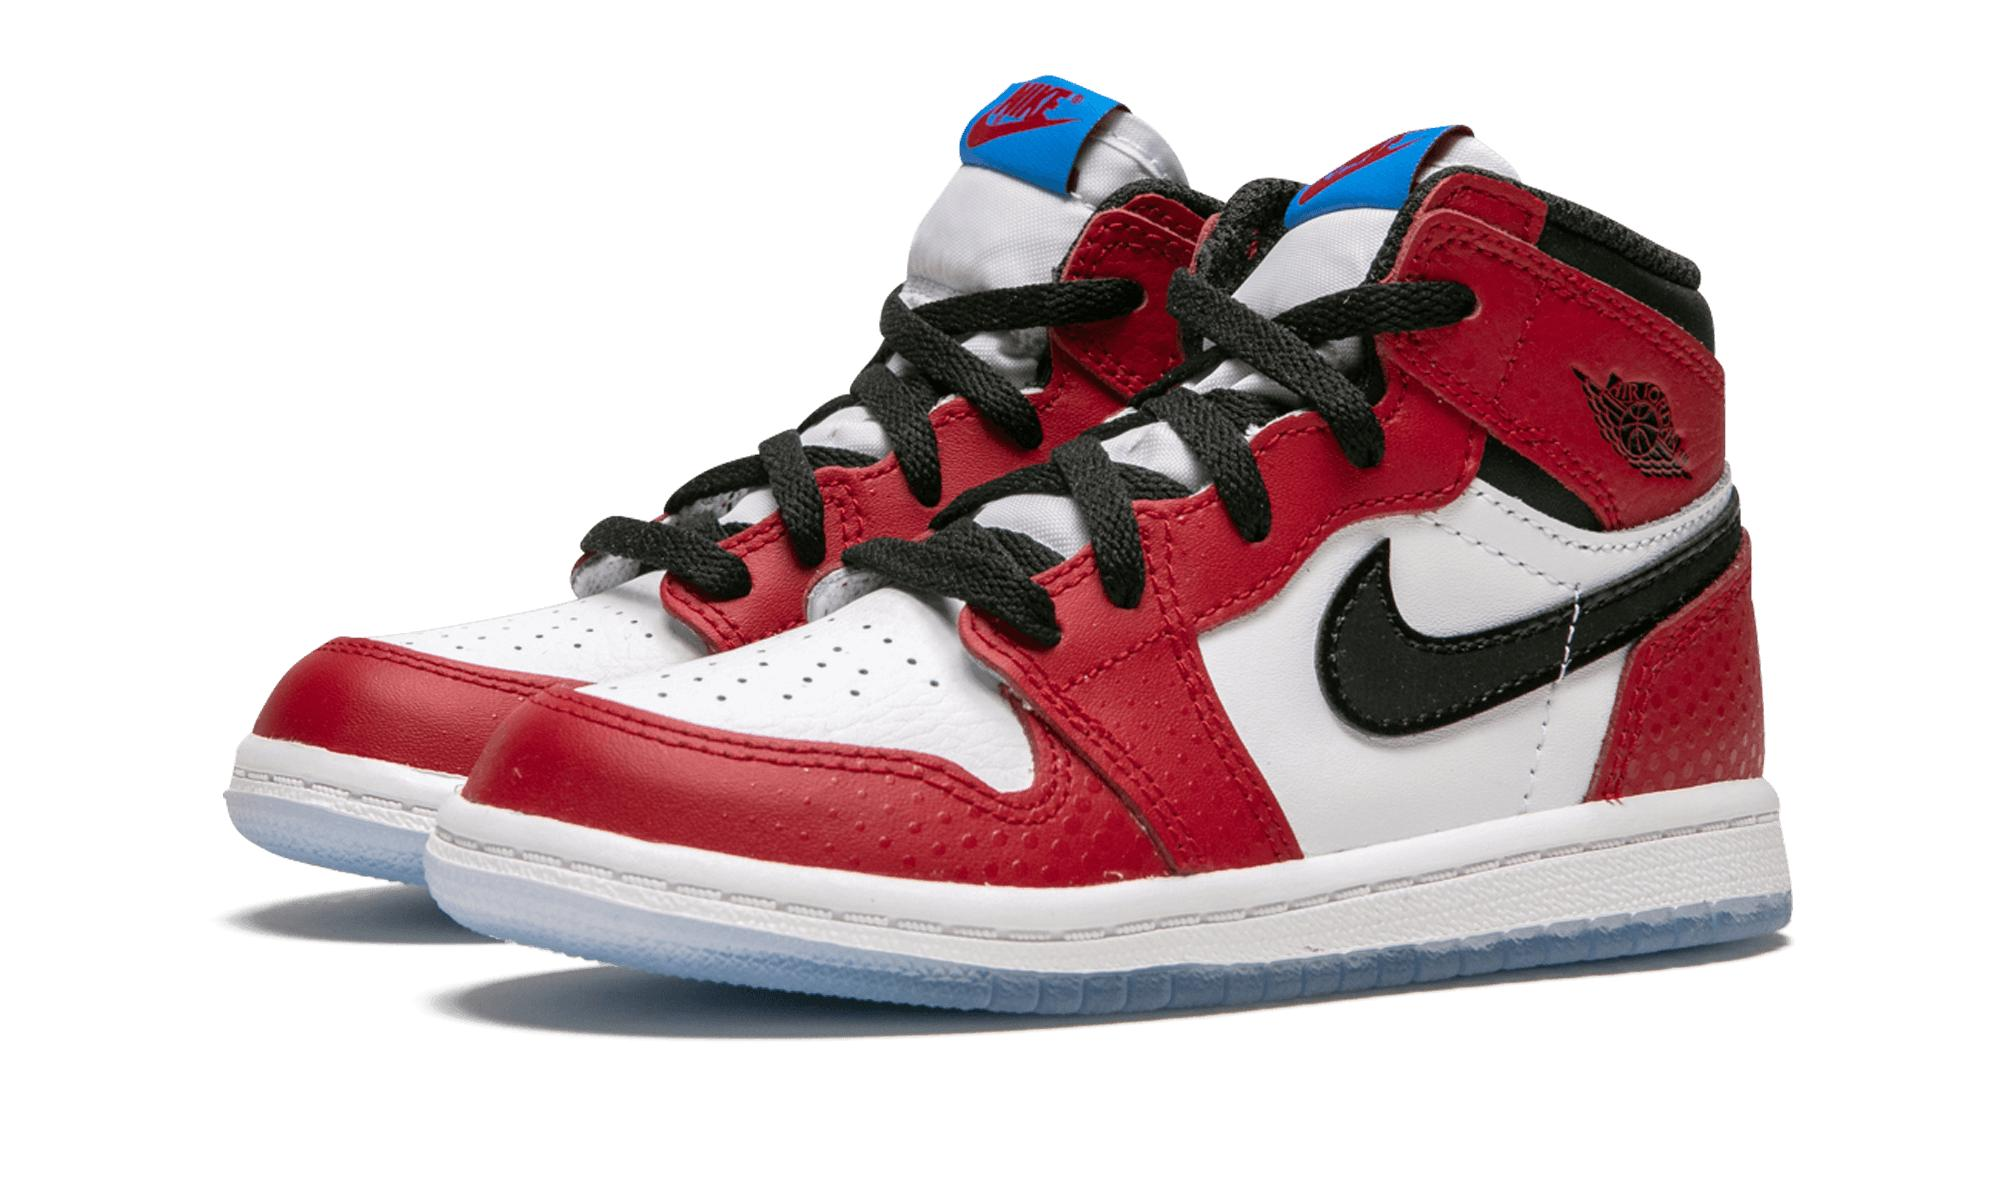 wholesale dealer eba53 26fec Nike - Red 1 Retro High Og (td) for Men - Lyst. View fullscreen